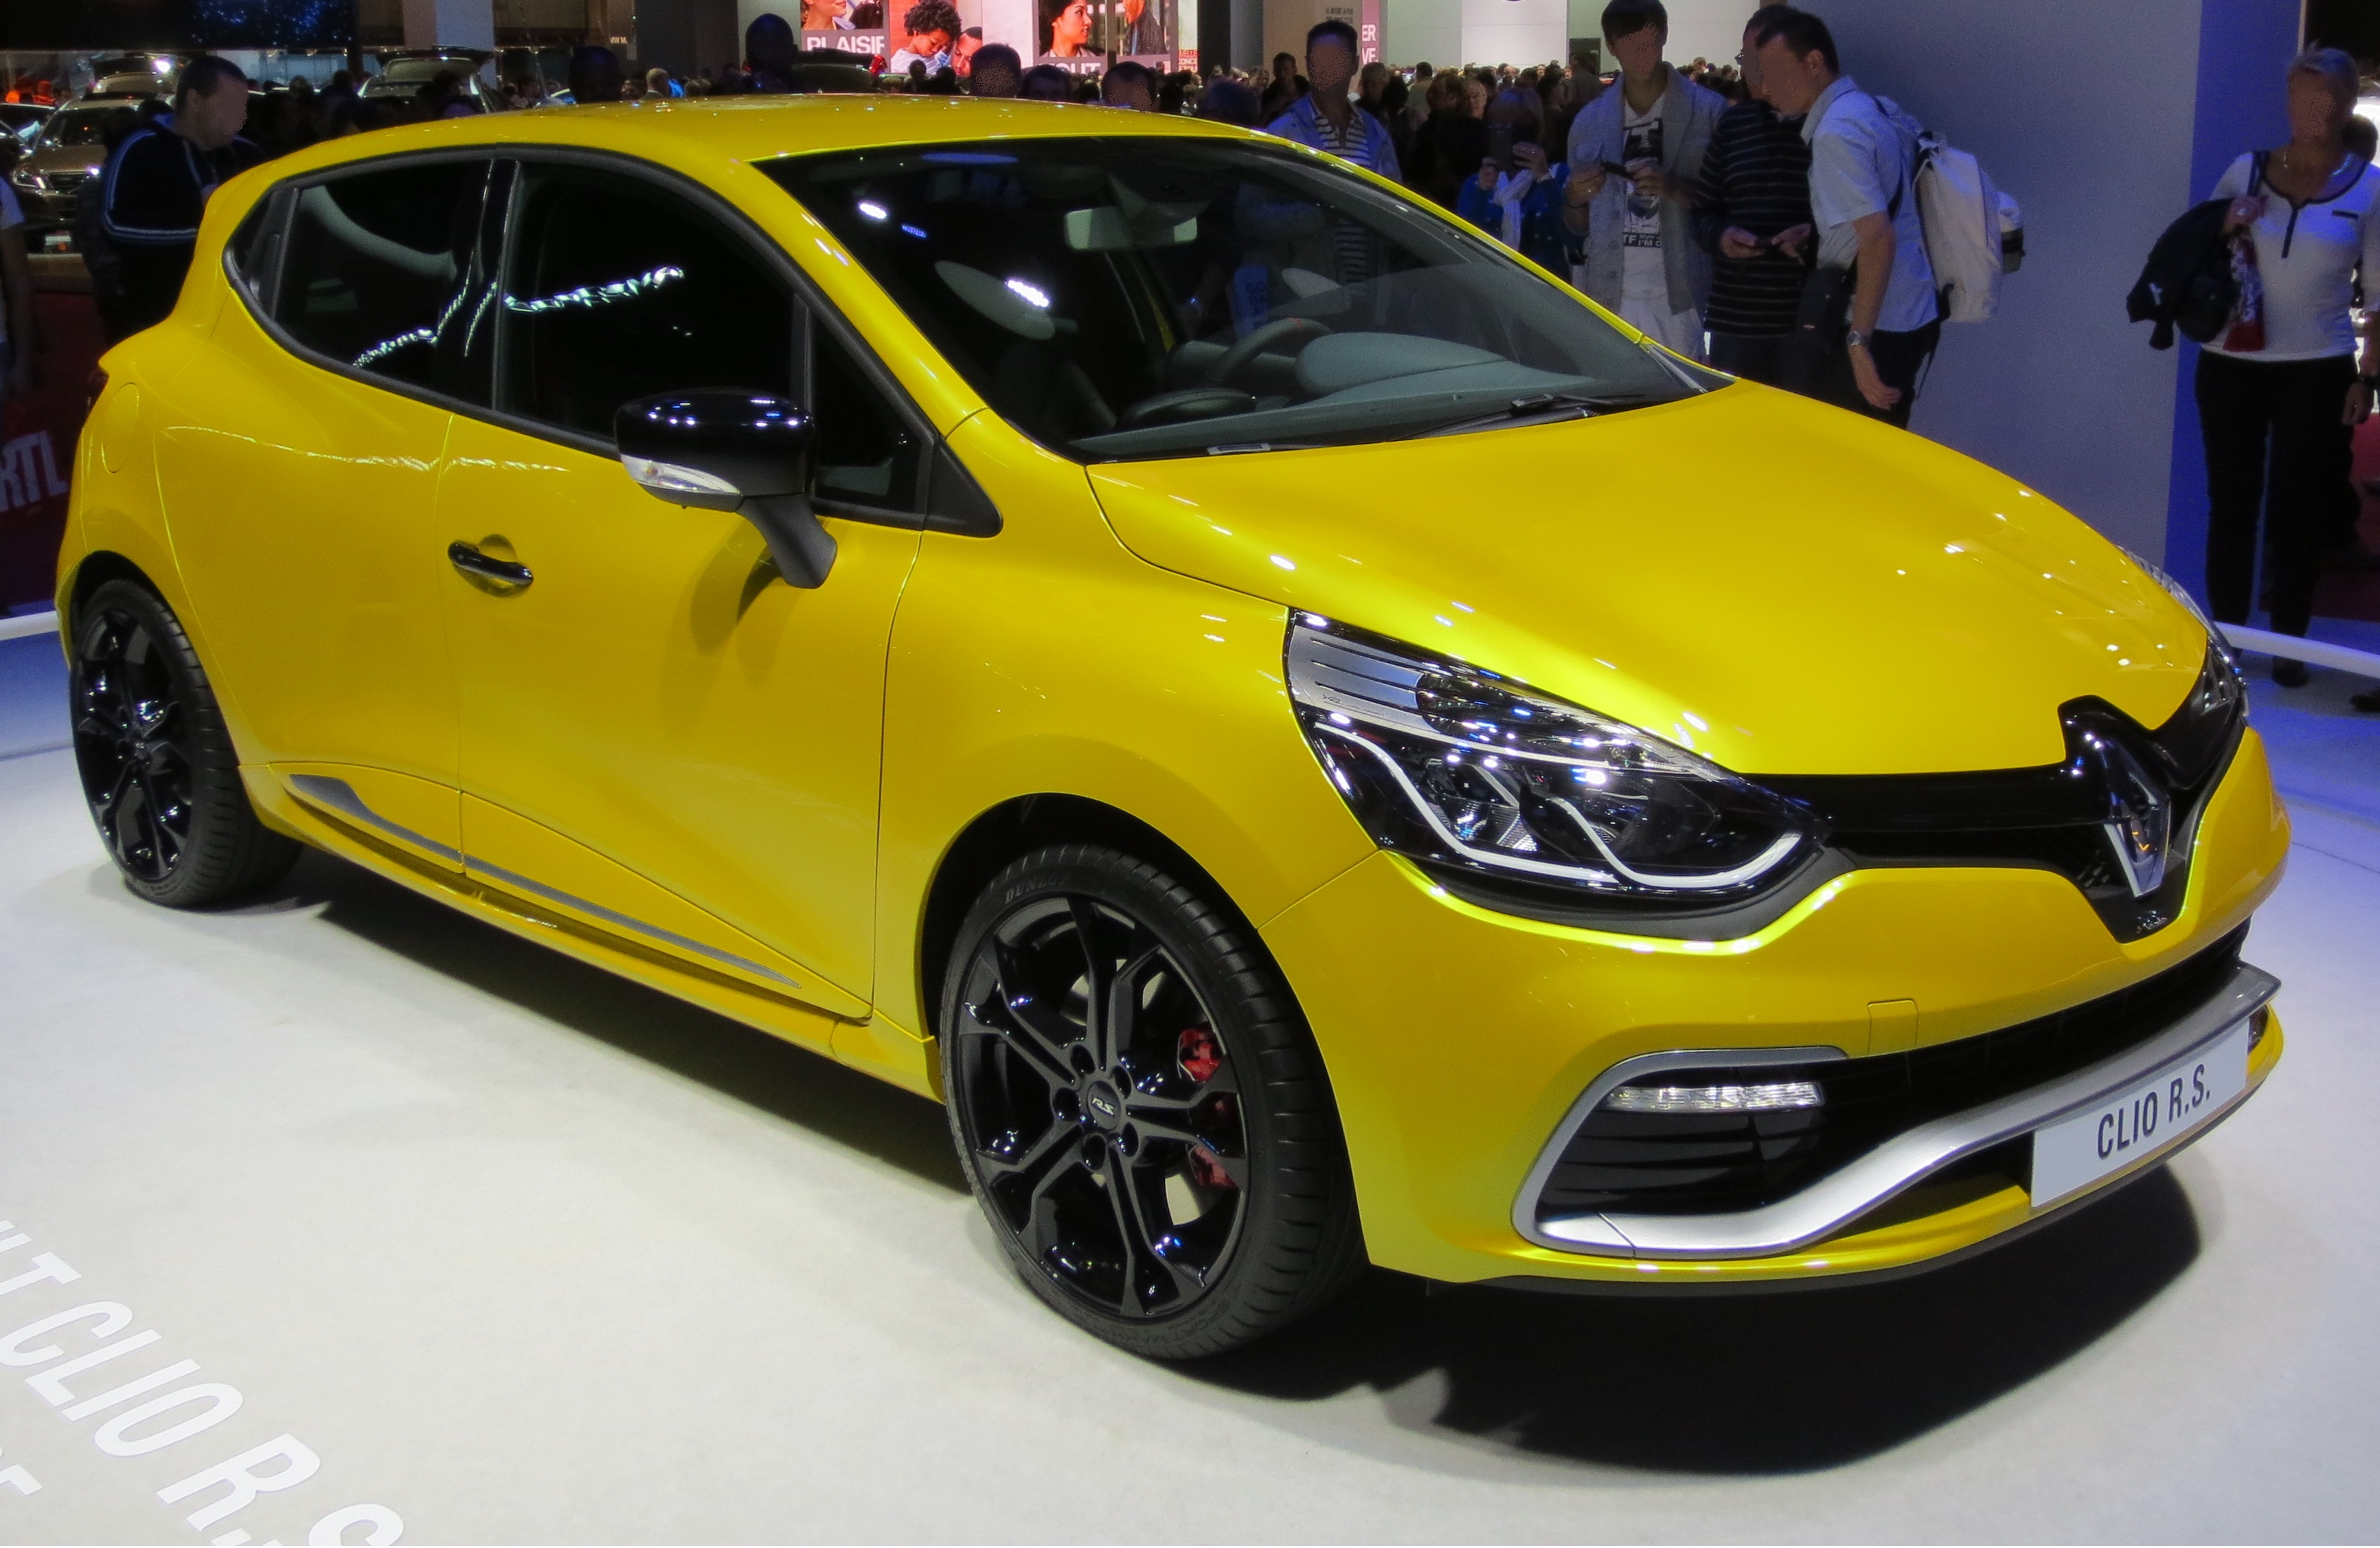 file renault clio iv rs front jpg wikimedia commons. Black Bedroom Furniture Sets. Home Design Ideas